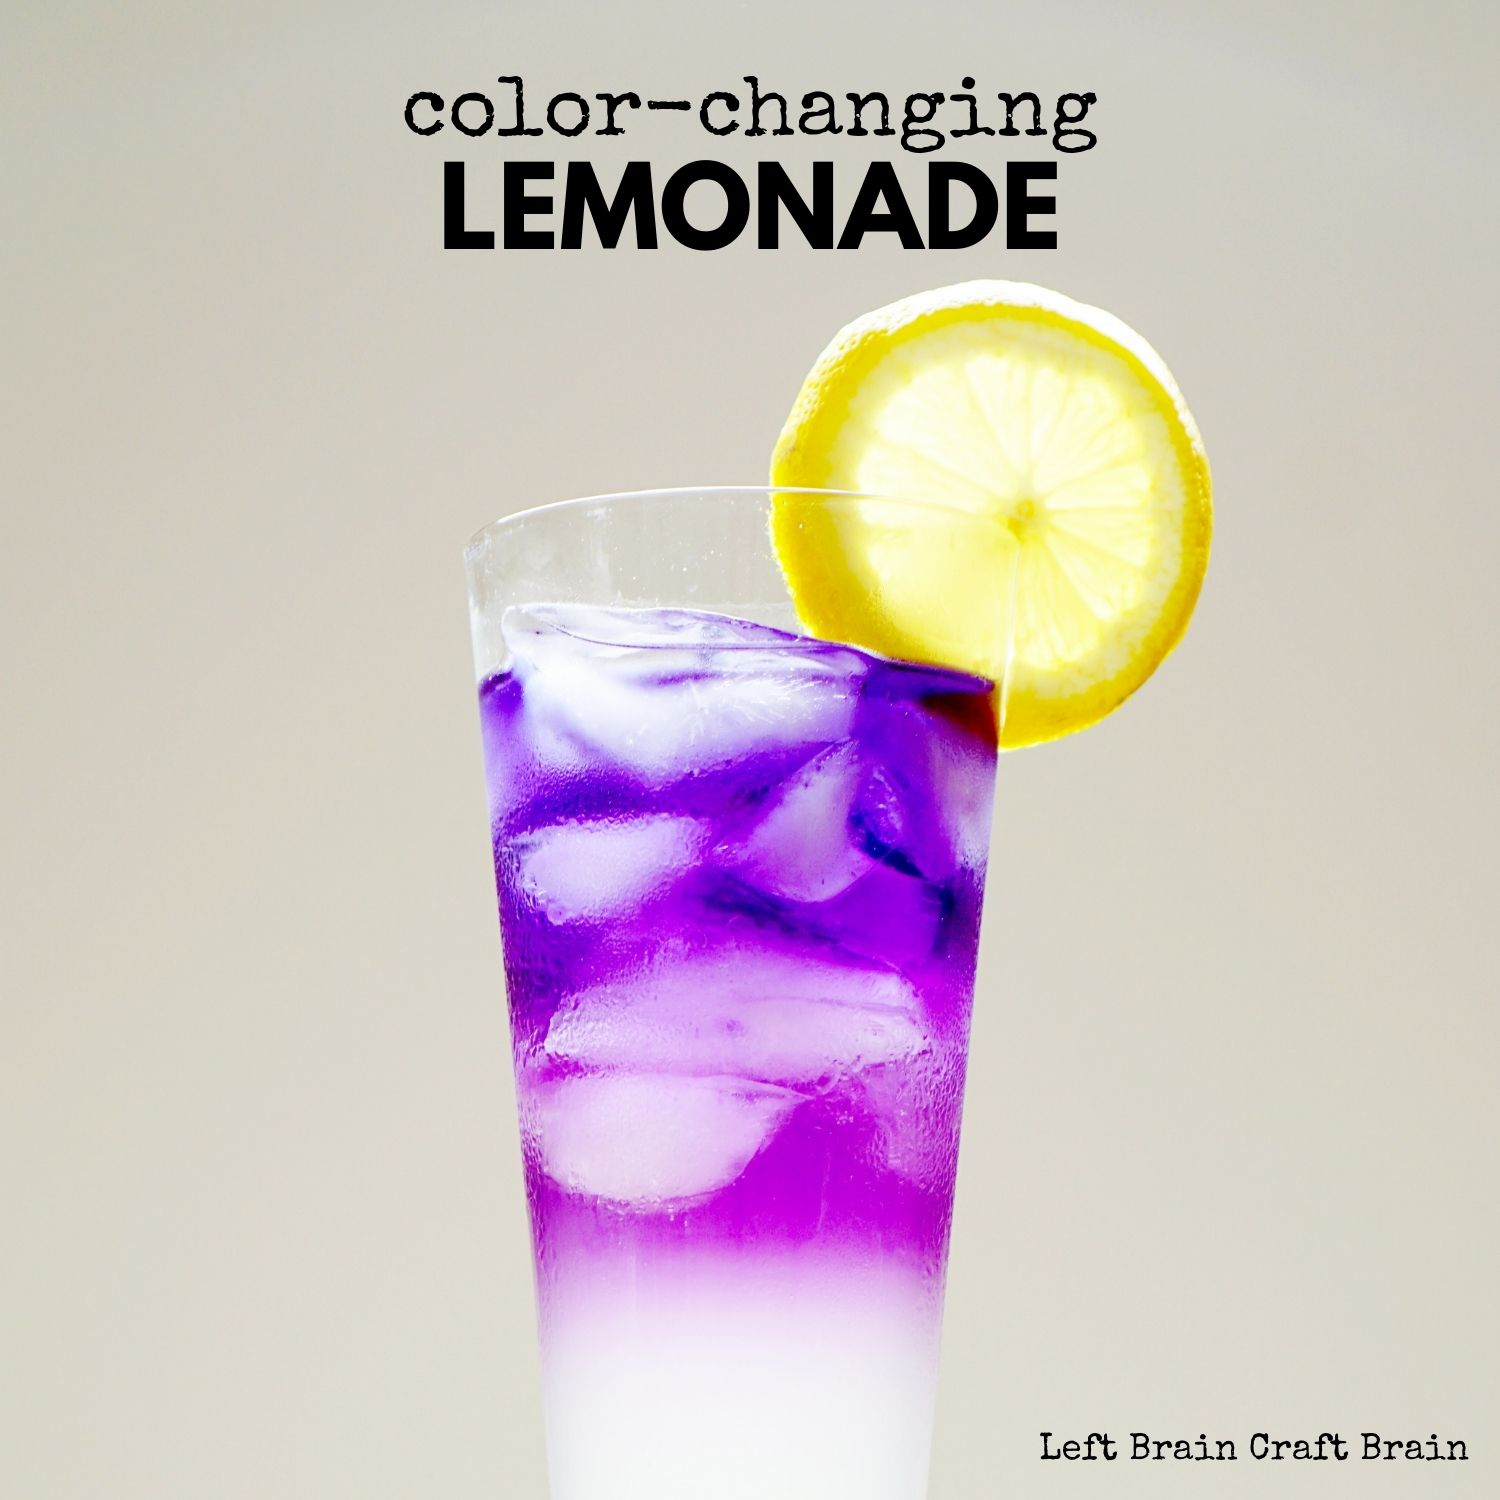 Make some color changing lemonade for a delicious and exciting edible science experiment. Perfect for STEM education at school and home. Or perfect for a summer party, too! Adds wow to any time you drink a glass of lemonade!